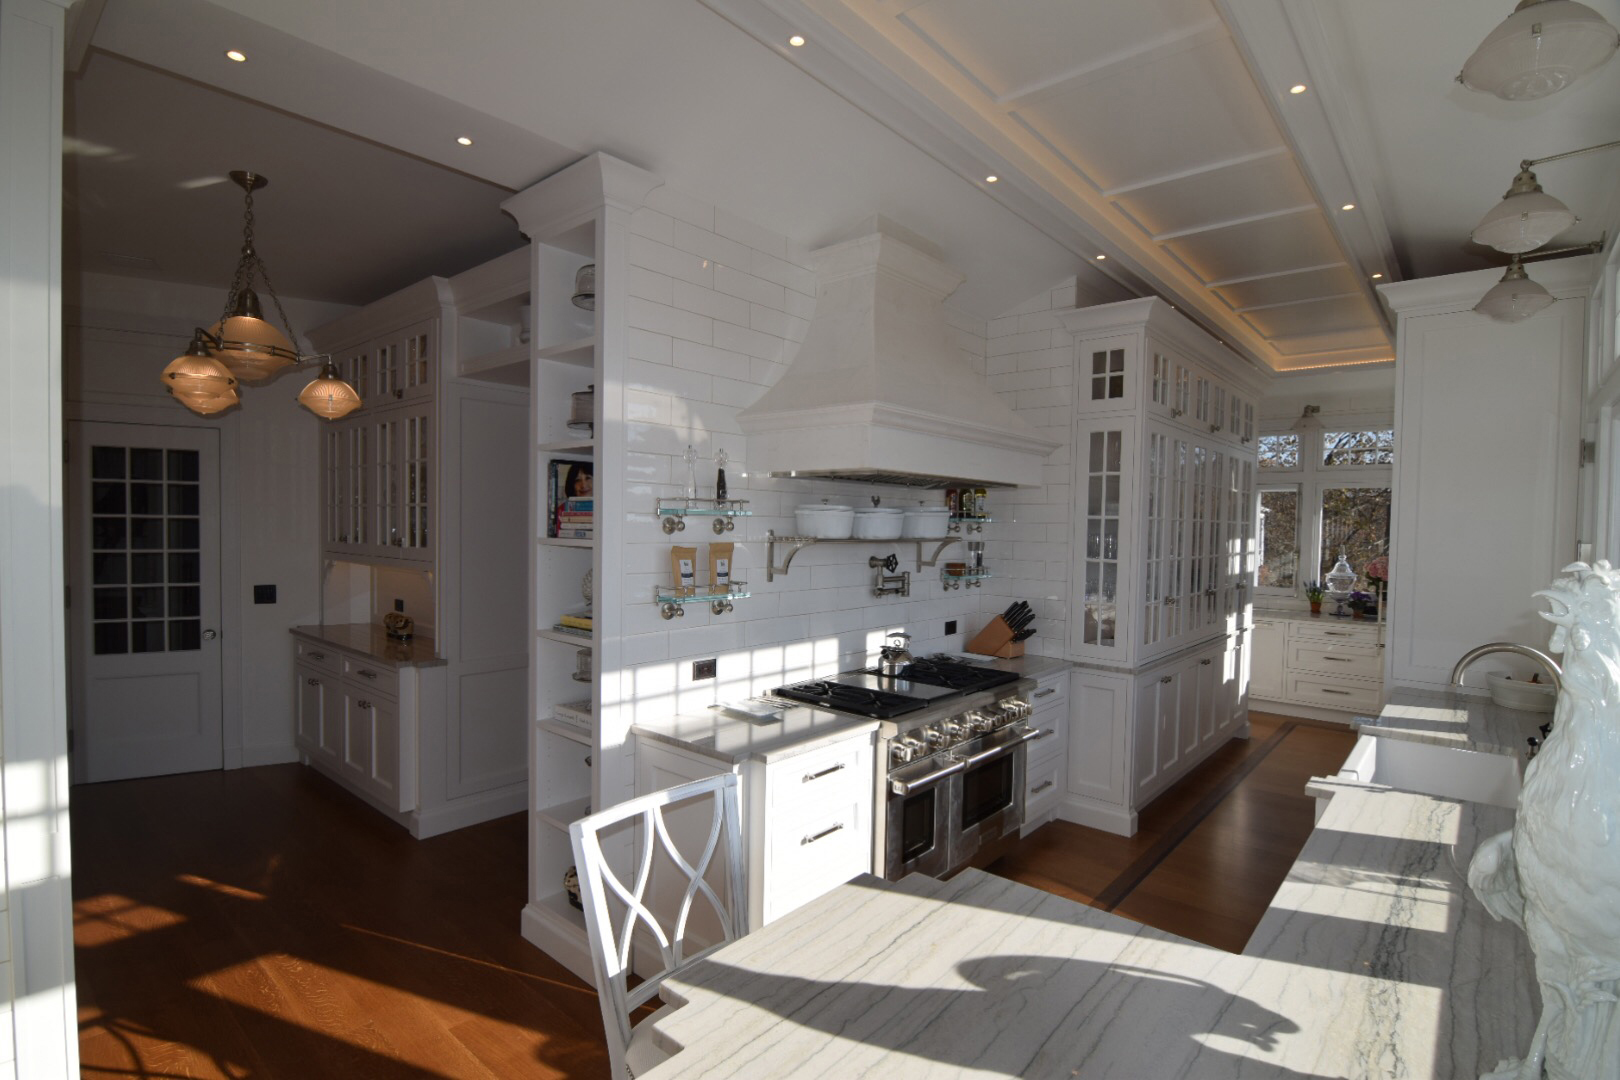 Custom cabinets with glass